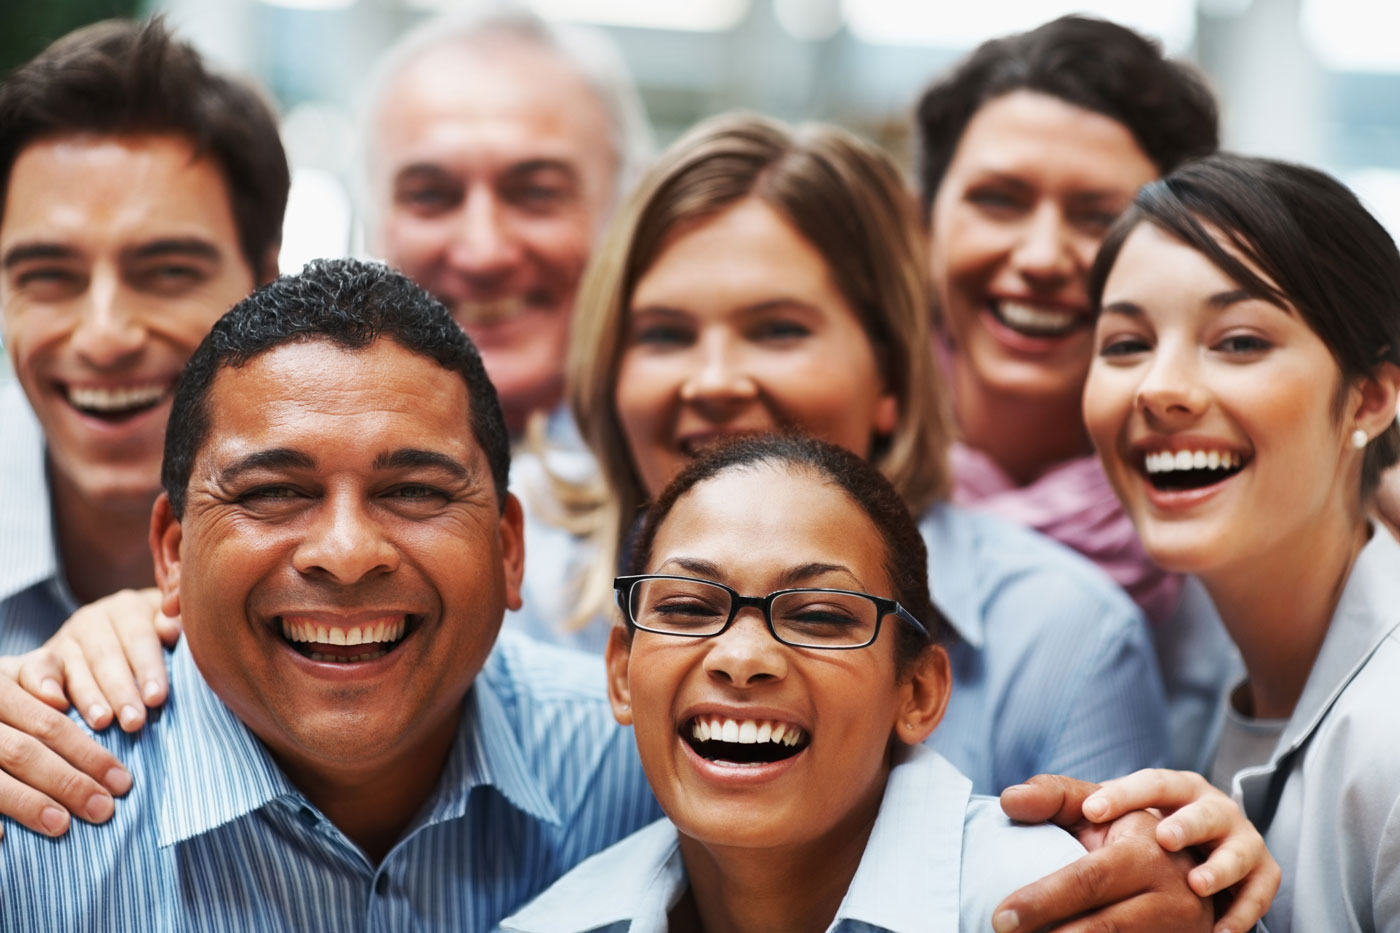 main-wellness-connection-smiling-group-people-multi-cultural